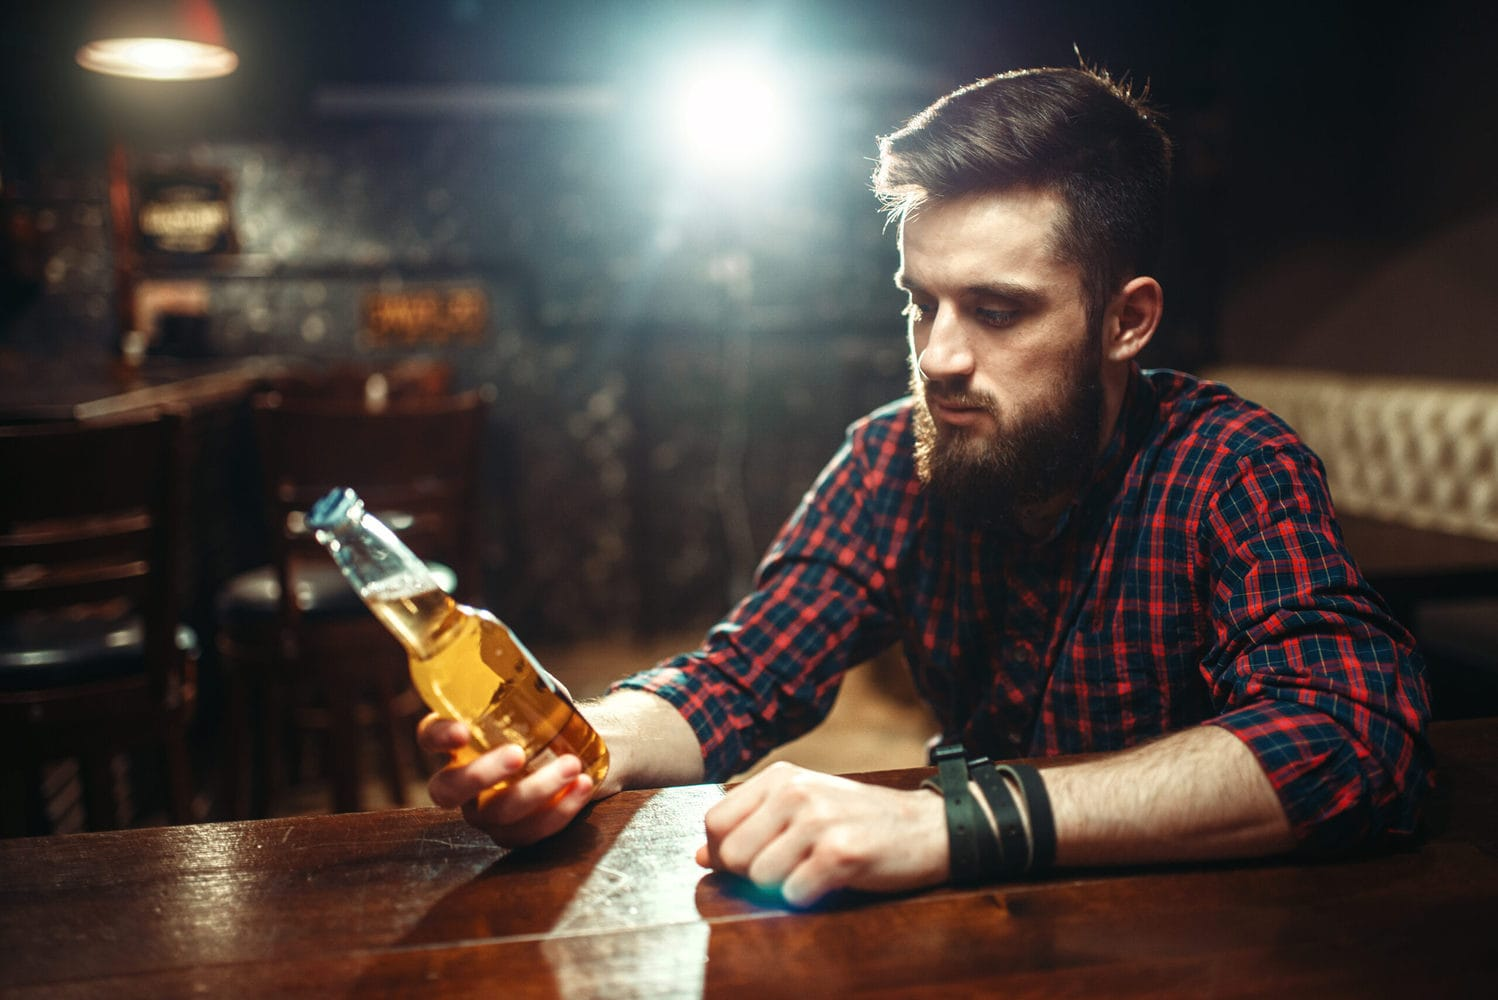 Man knows he must be quitting alcohol